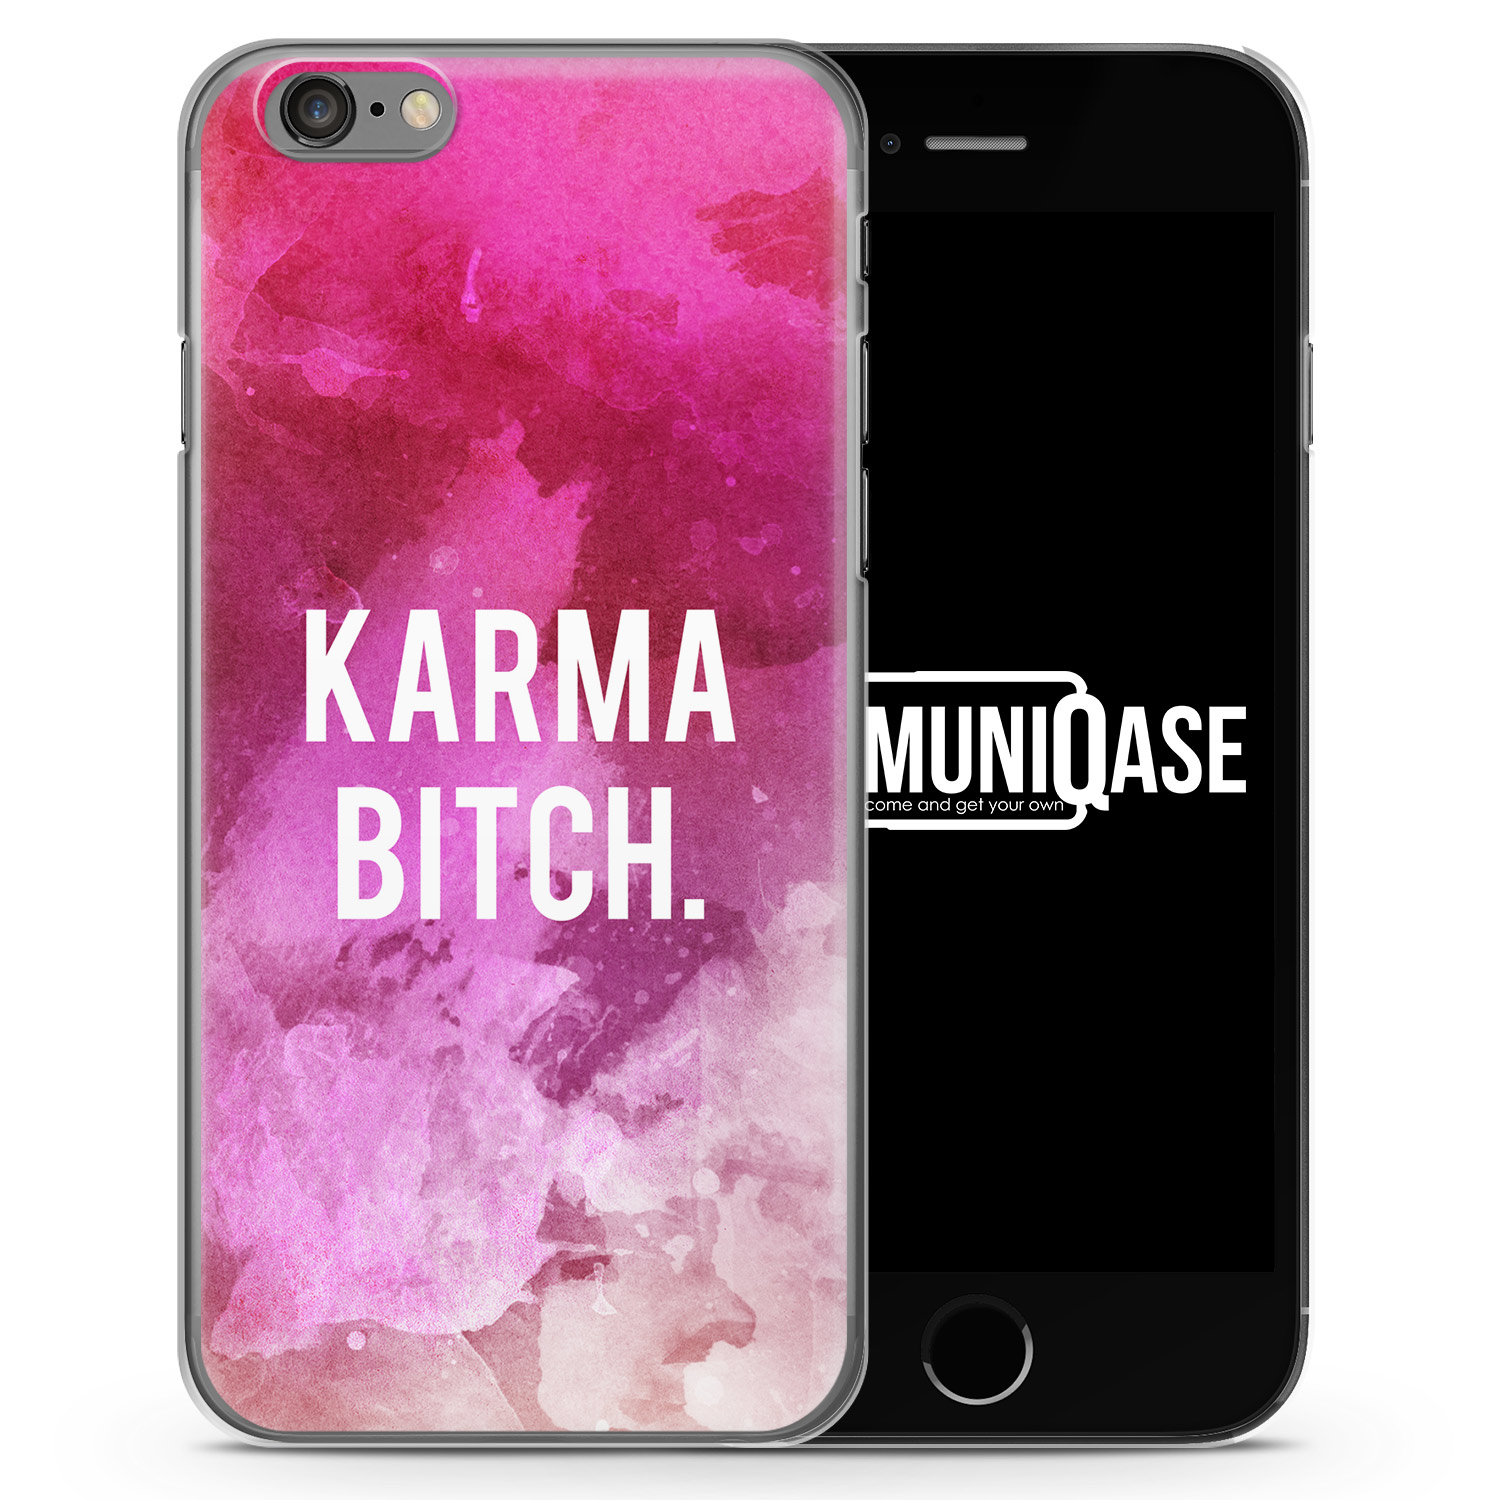 Karma Bitch. Pink - Slim Handyhülle für iPhone 6 Plus & 6s Plus